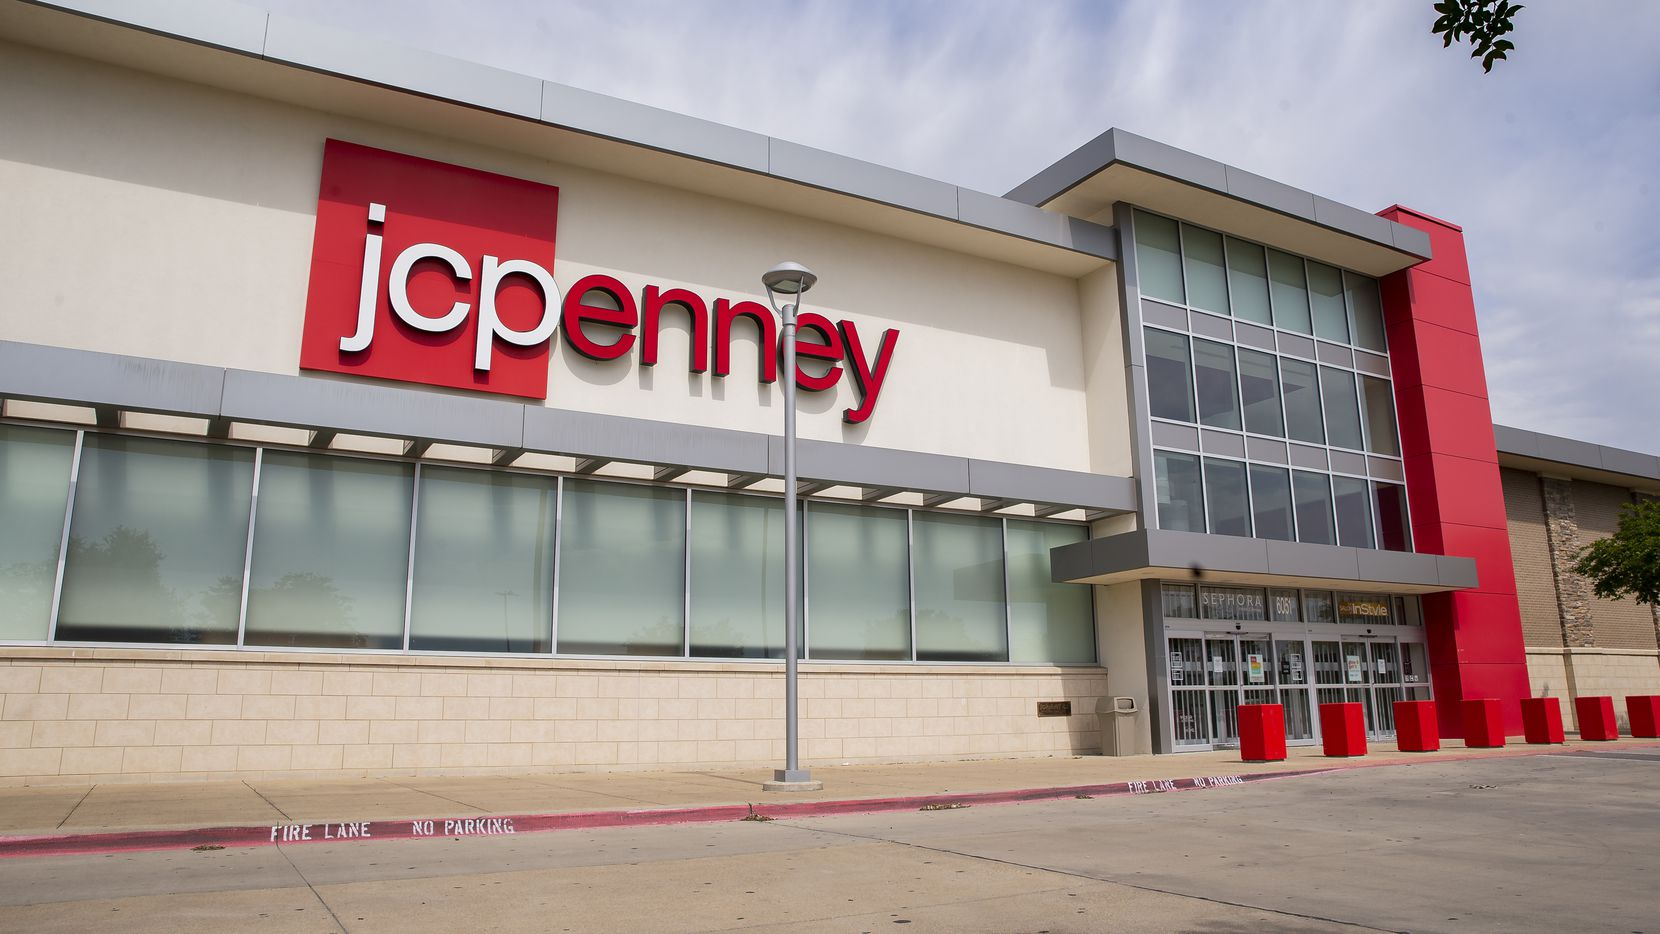 The J.C. Penney at Timber Creek Crossing shopping center in Dallas closed permanently on Sunday as part of the Plano-based retailer's bankruptcy reorganization.